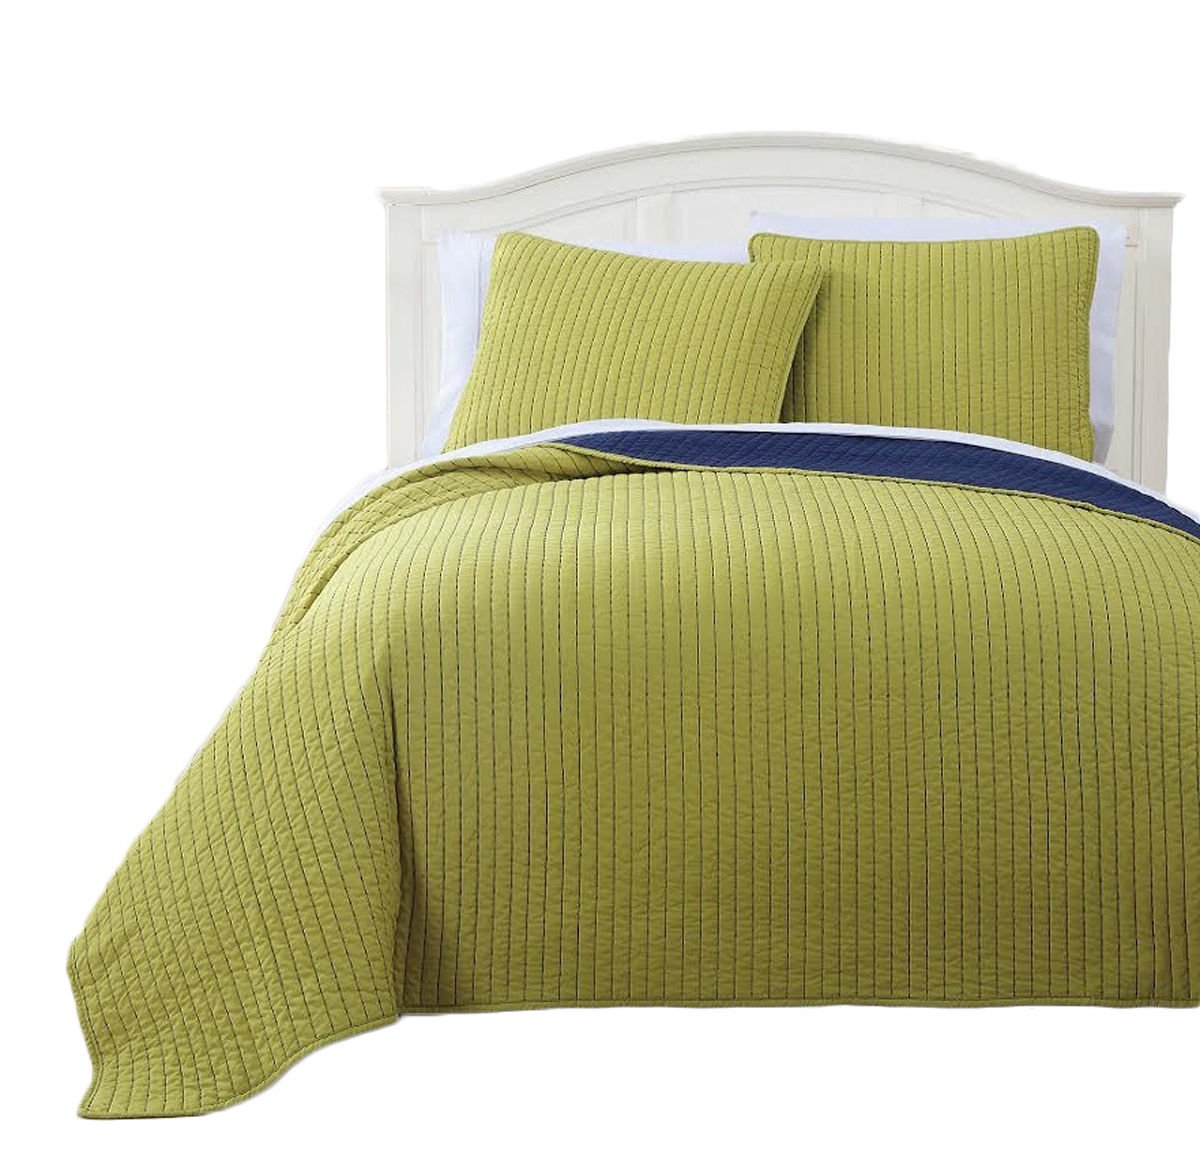 Reversible Modern Project Runway Coverlet, Super Soft Elegant Quilt & Shams Set/Full/Queen - Citron & Navy